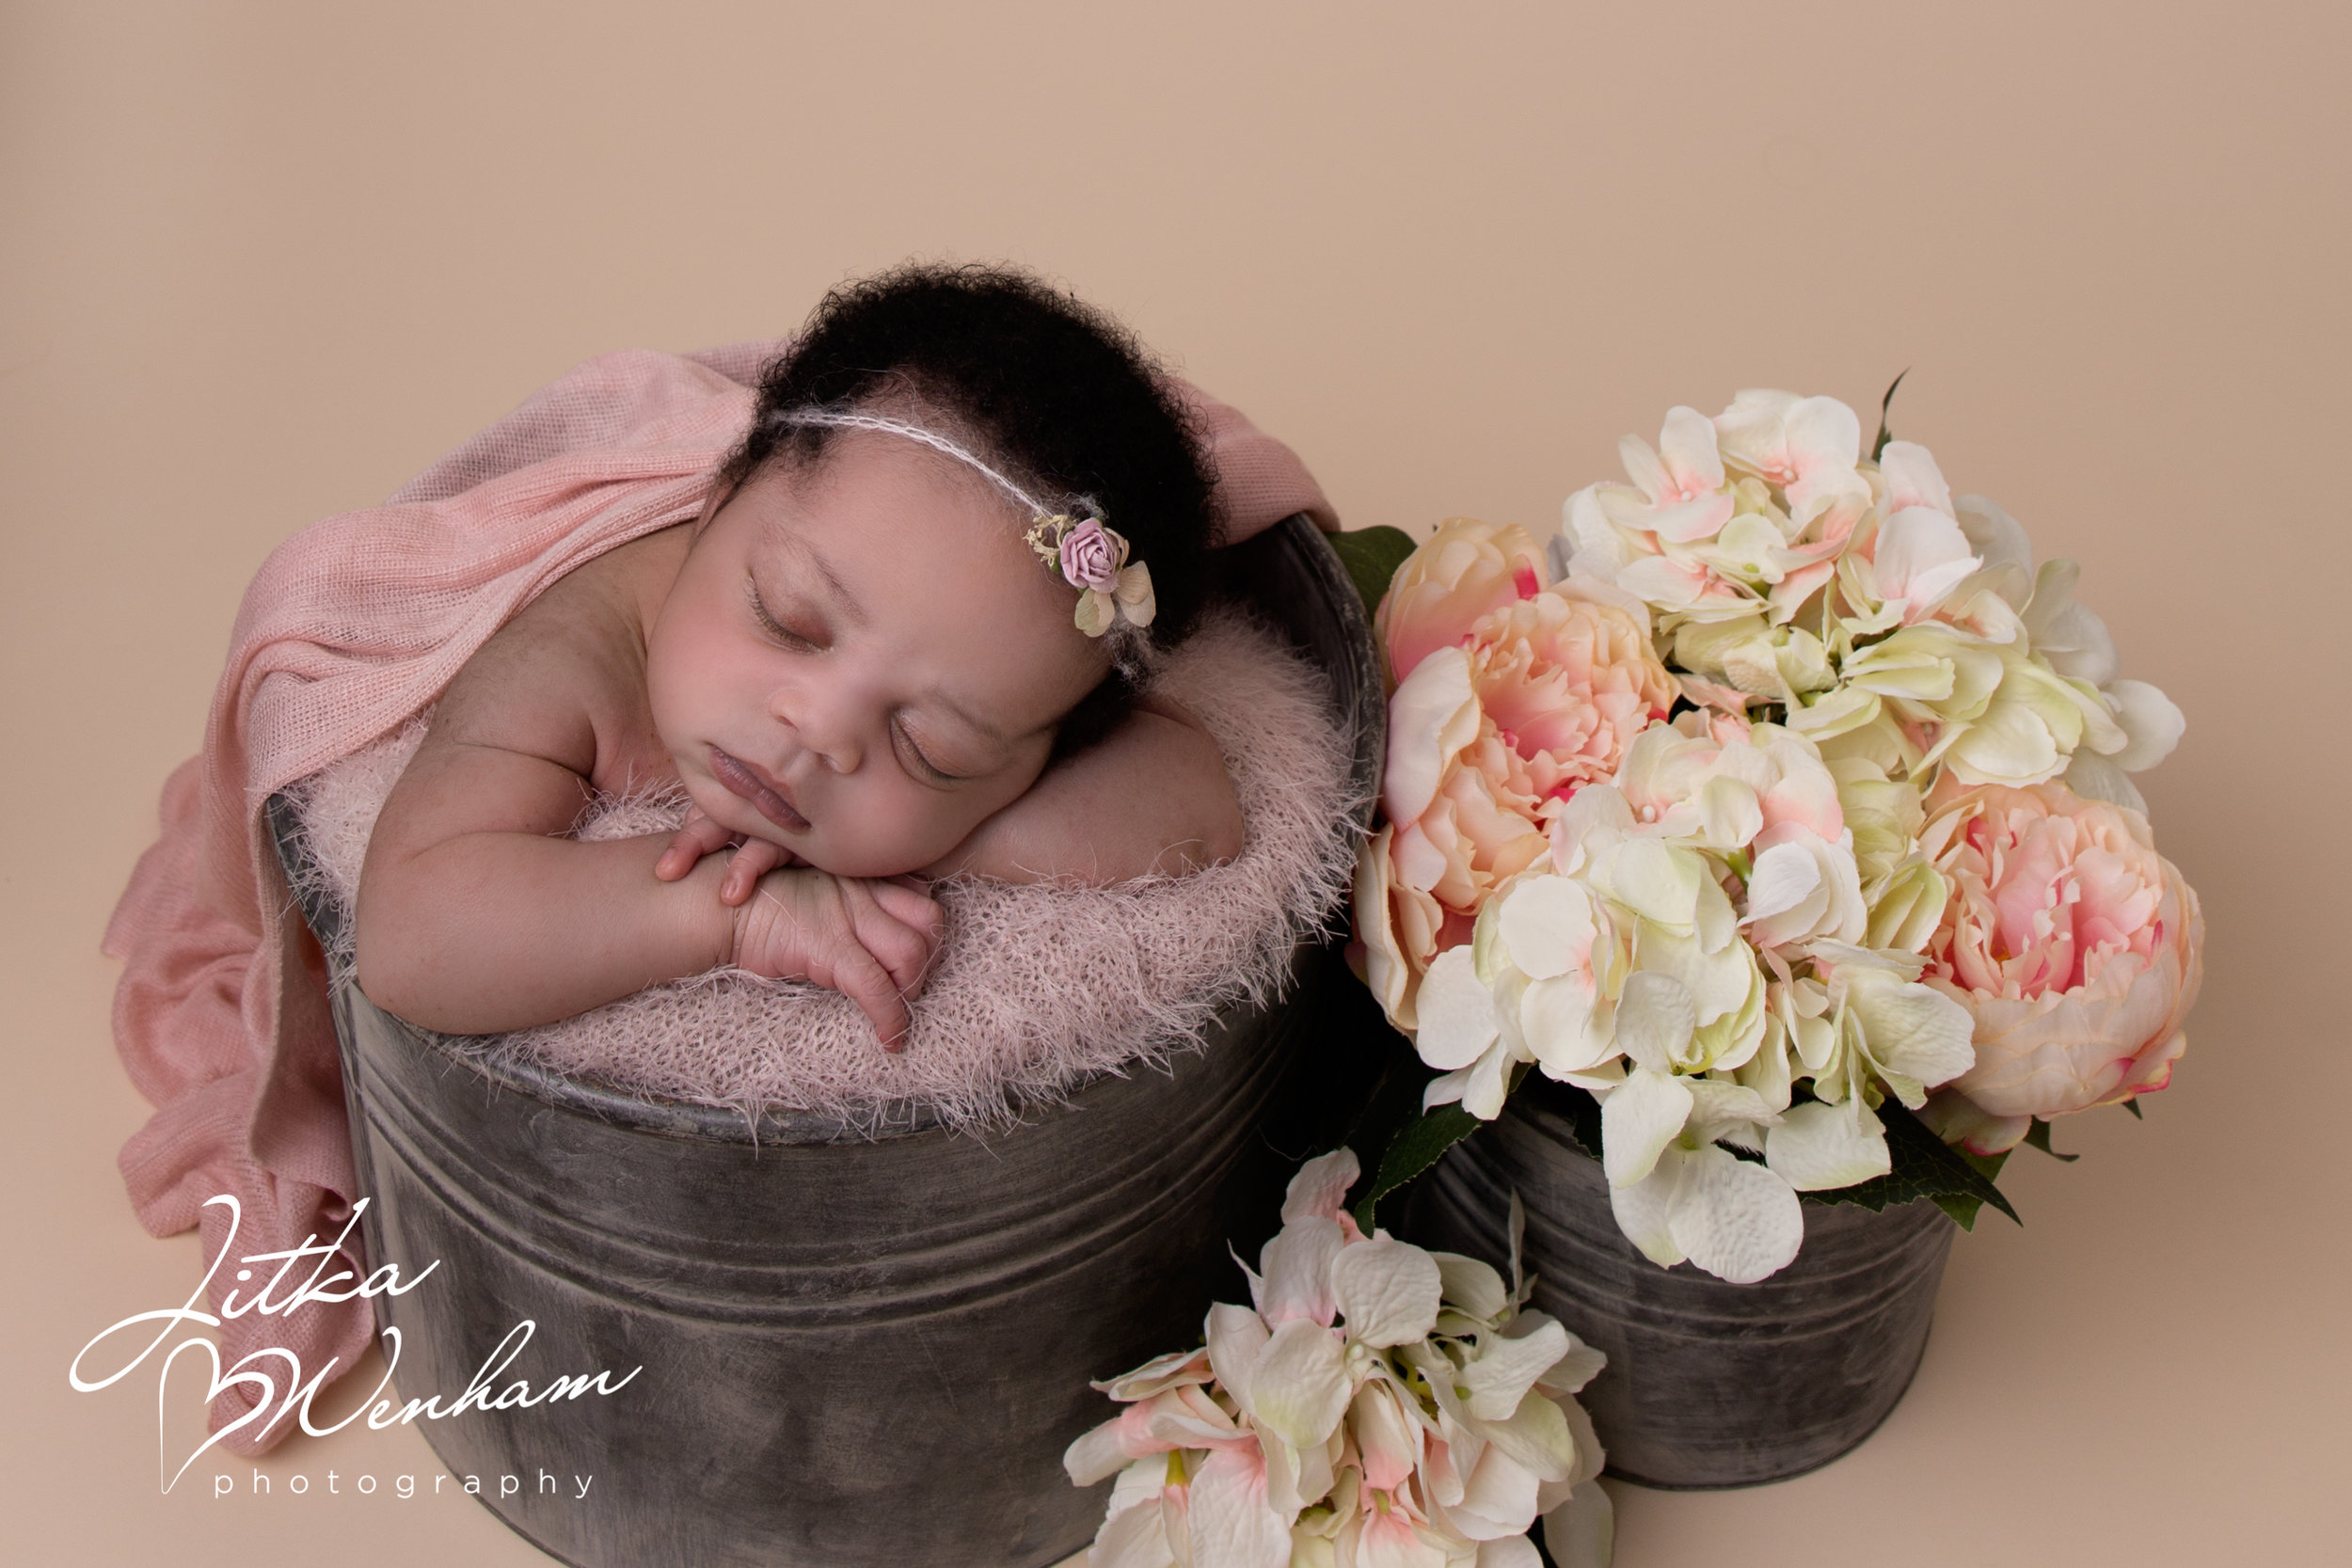 Jayda-newborn-photography-children-baby-milton keynes-cake-smash-23.jpg